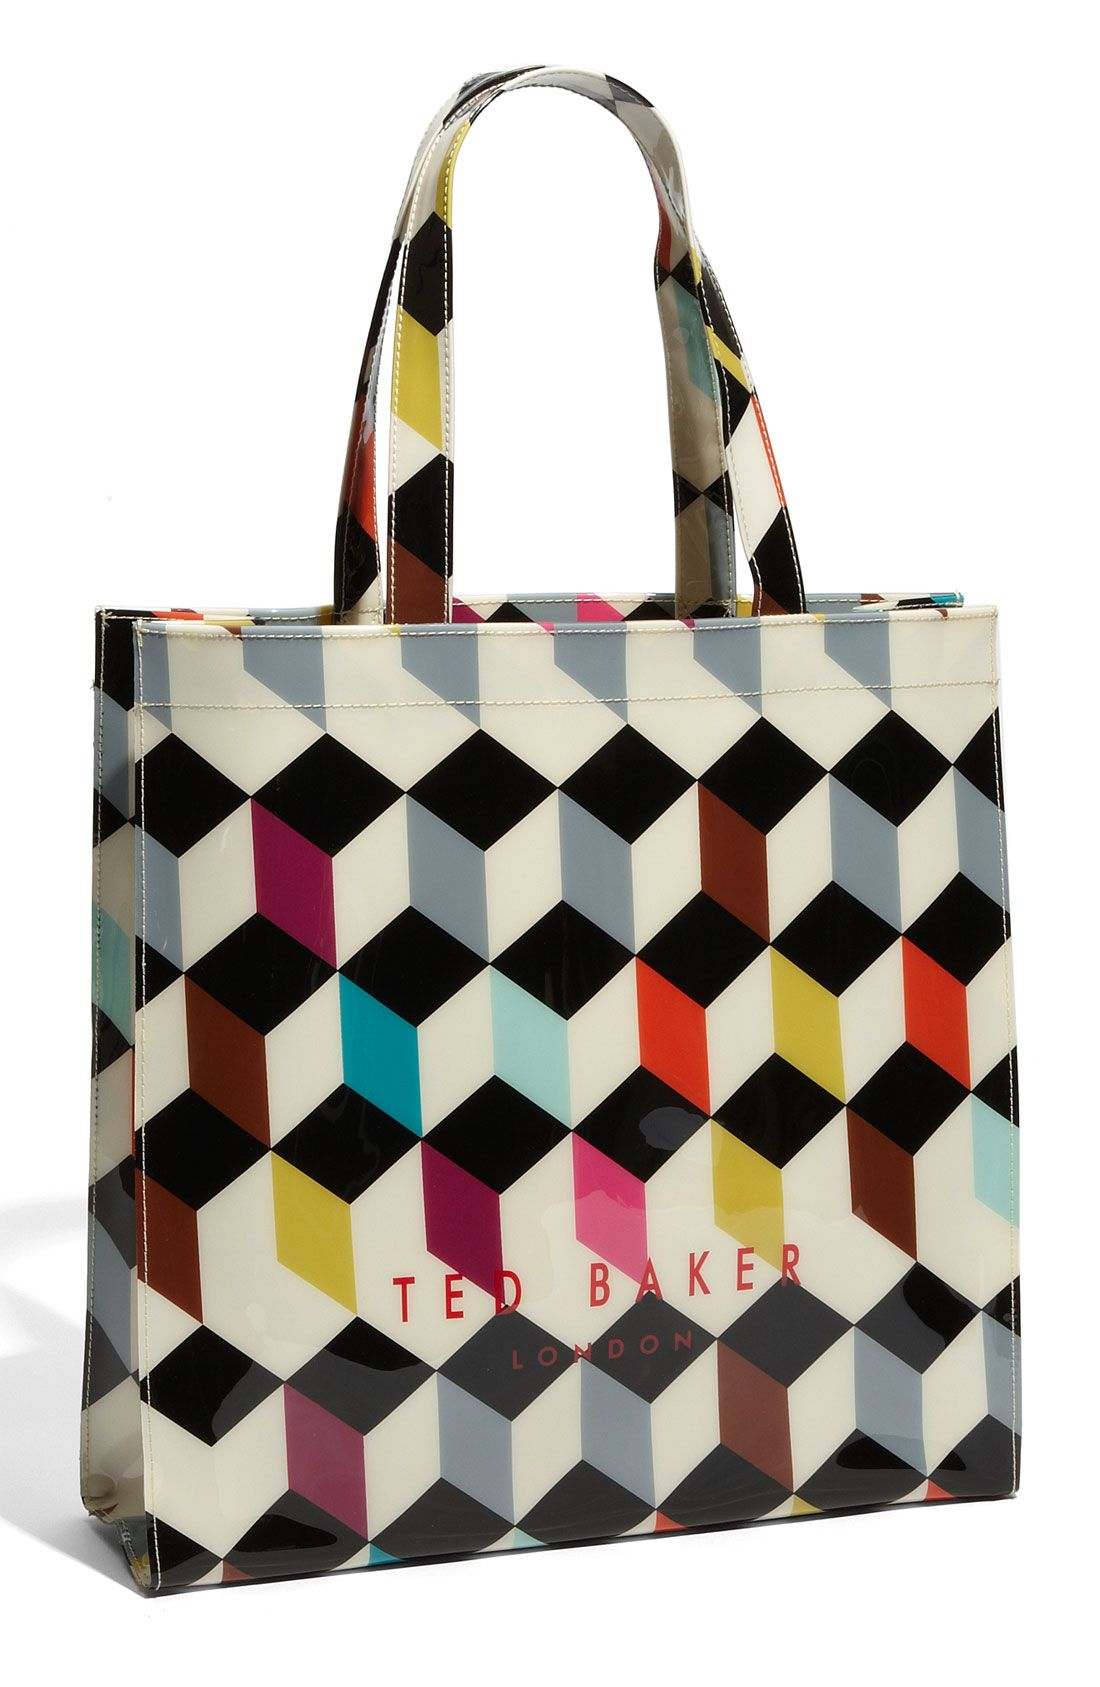 8c6a03854d5 Ted Baker Printed Ikon Tote in Multicolor (cube print) | Lyst ...